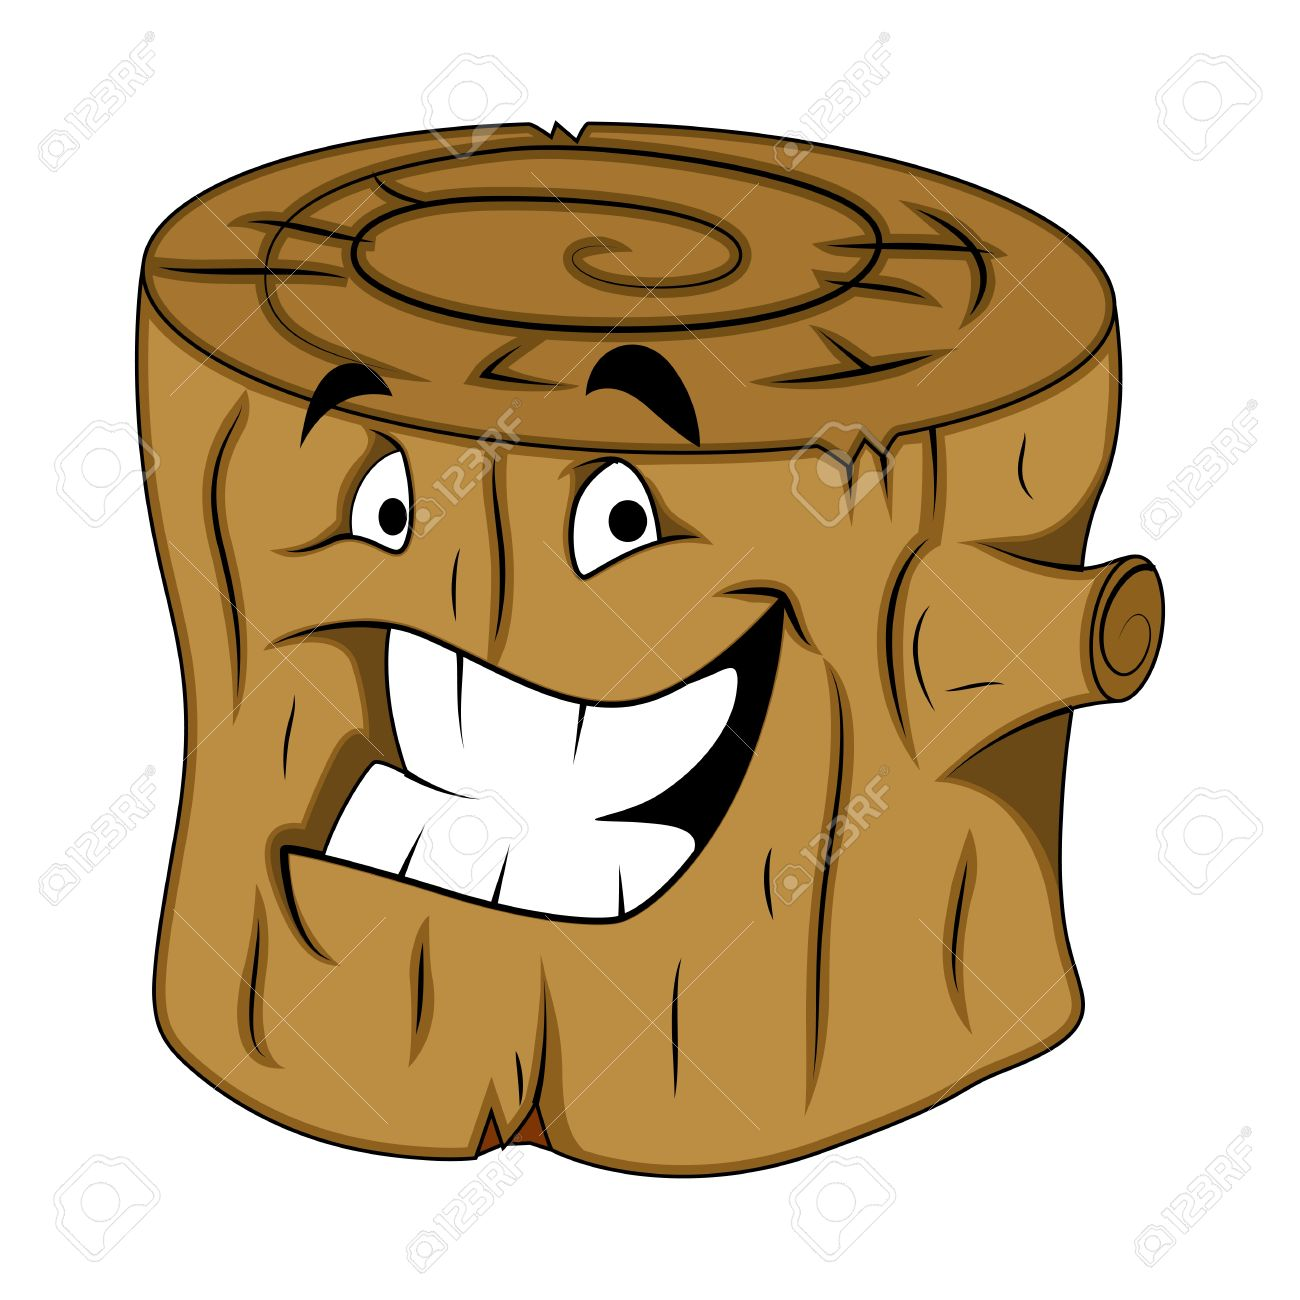 Tree Stub Character Royalty Free Cliparts, Vectors, And Stock.